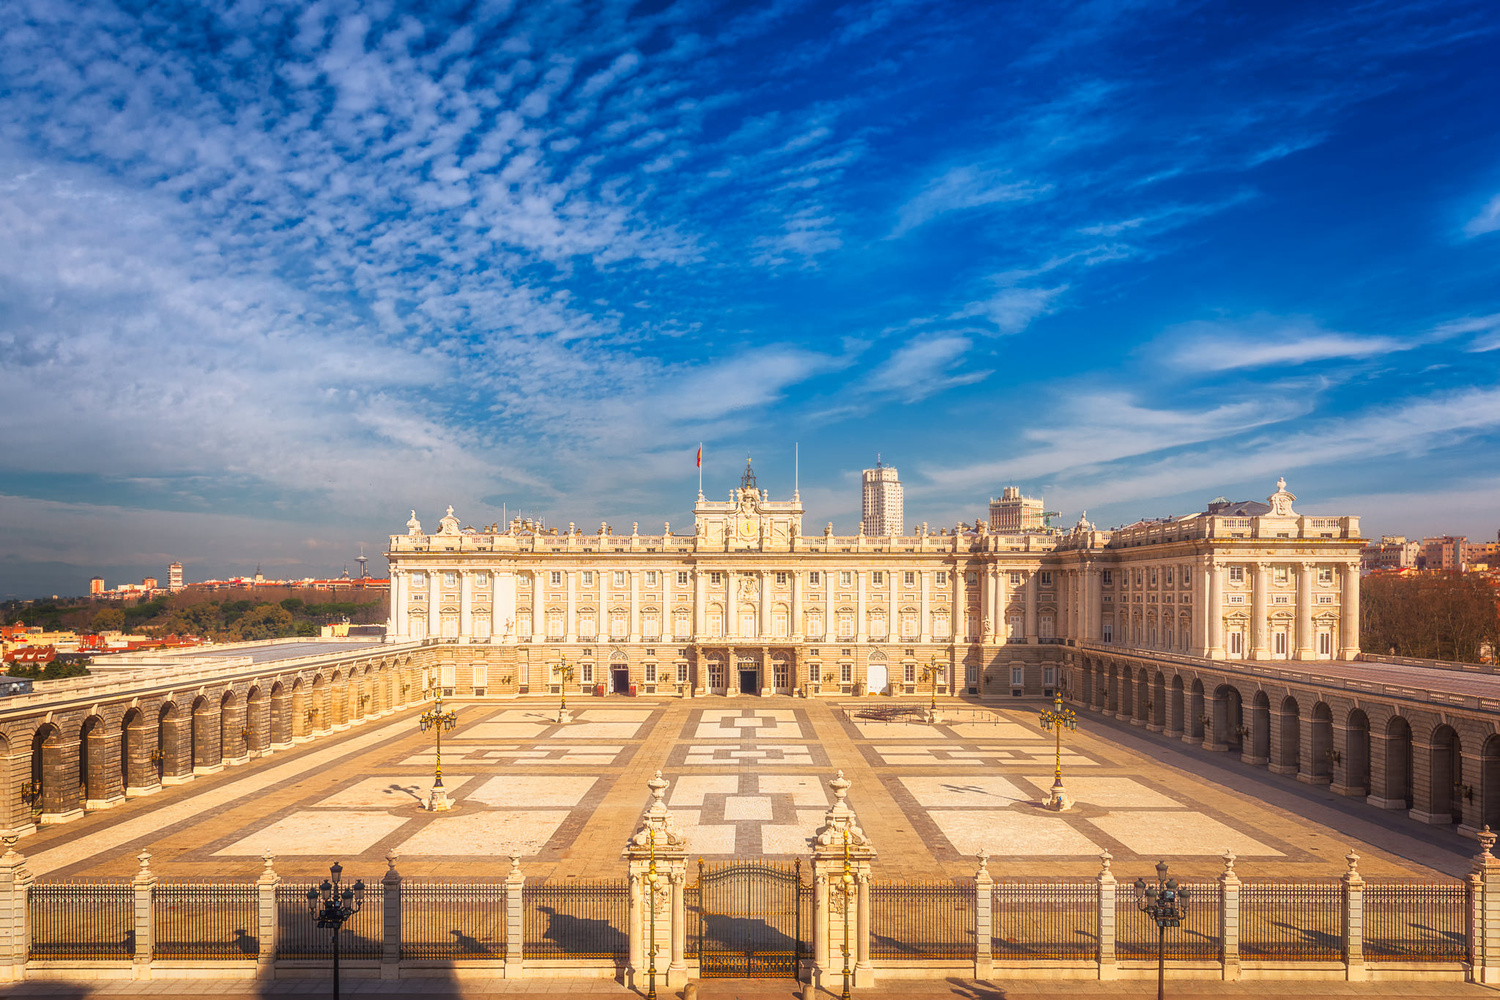 The Royal Palace of Madrid and Plaza de la Armeria by Nico Trinkhaus